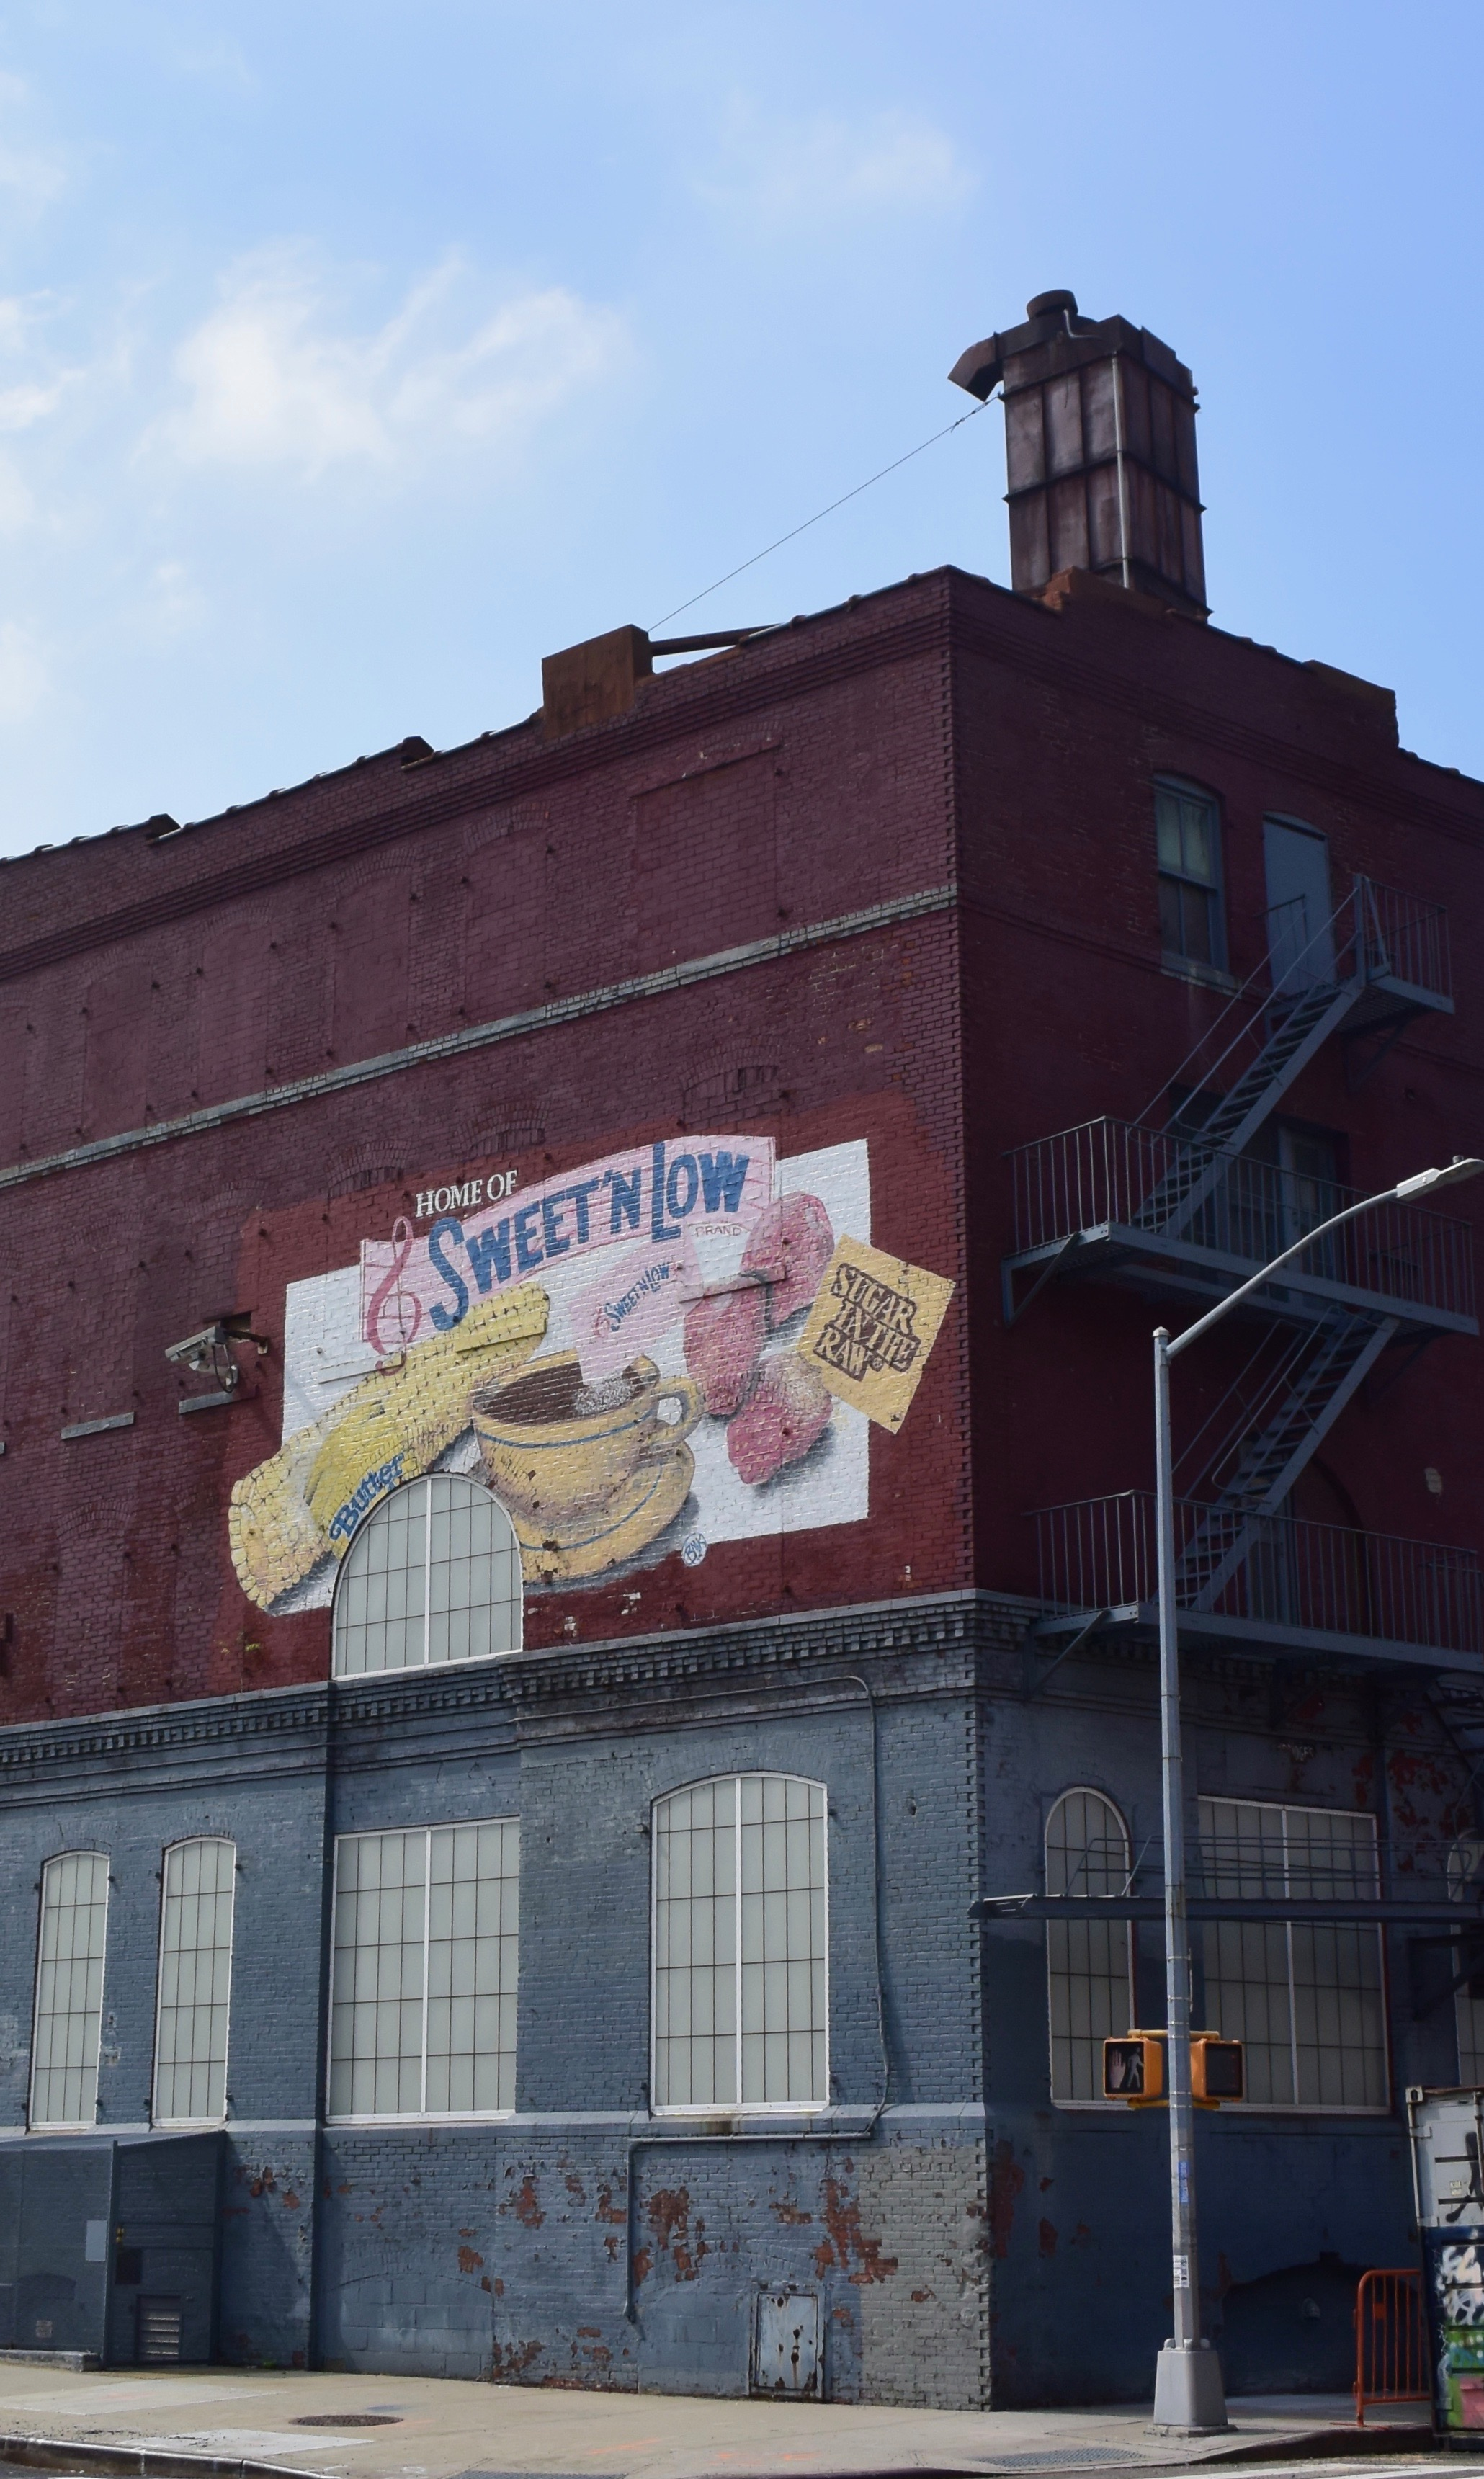 Brooklyn street art - sweet n low